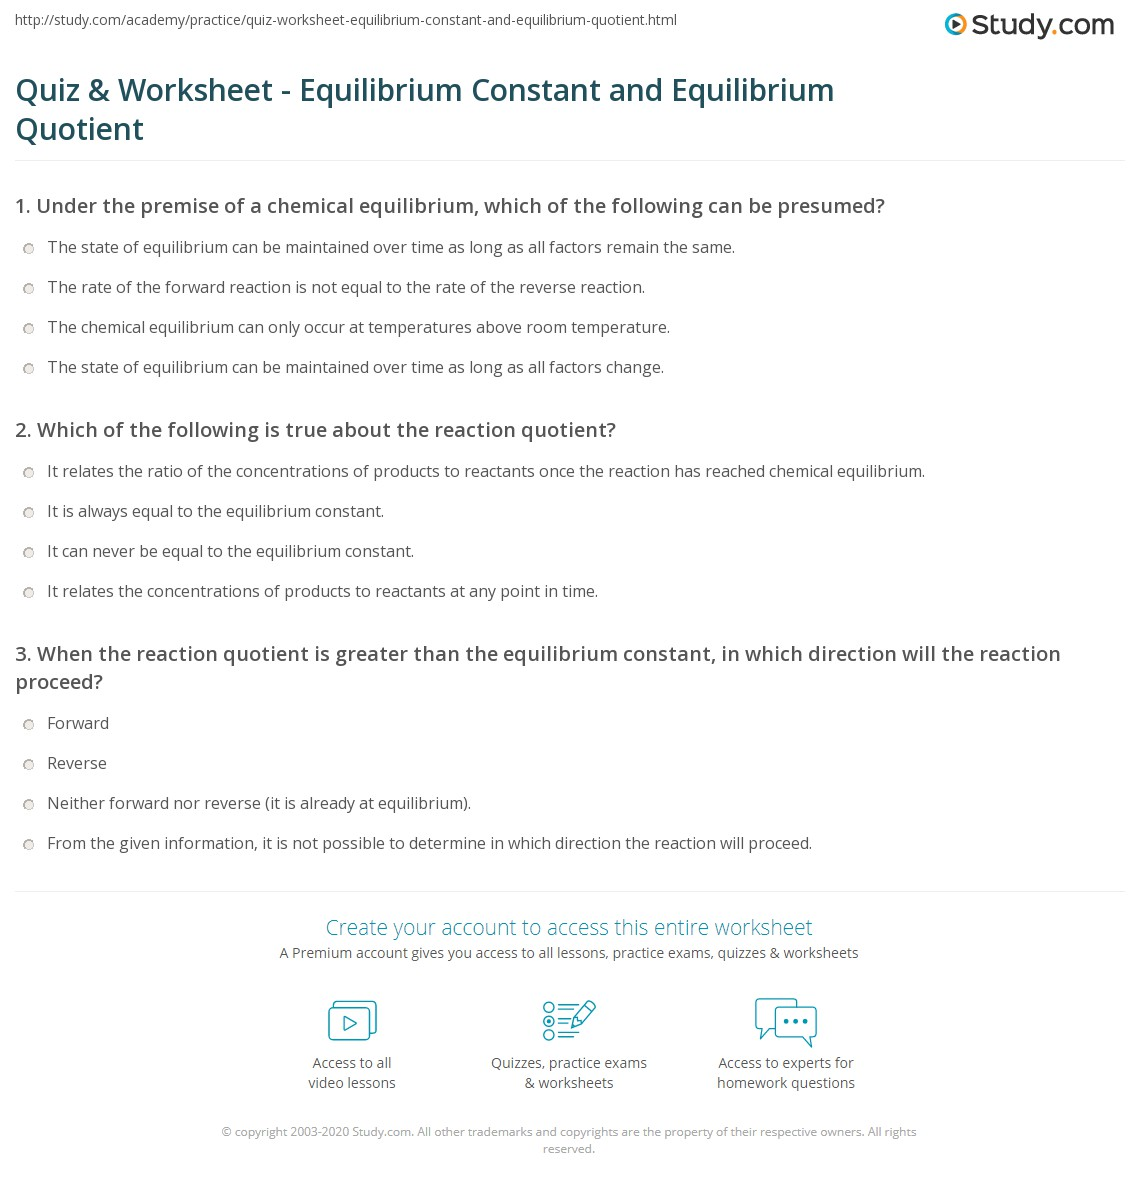 Print Equilibrium Constant (K) and Reaction Quotient (Q) Worksheet